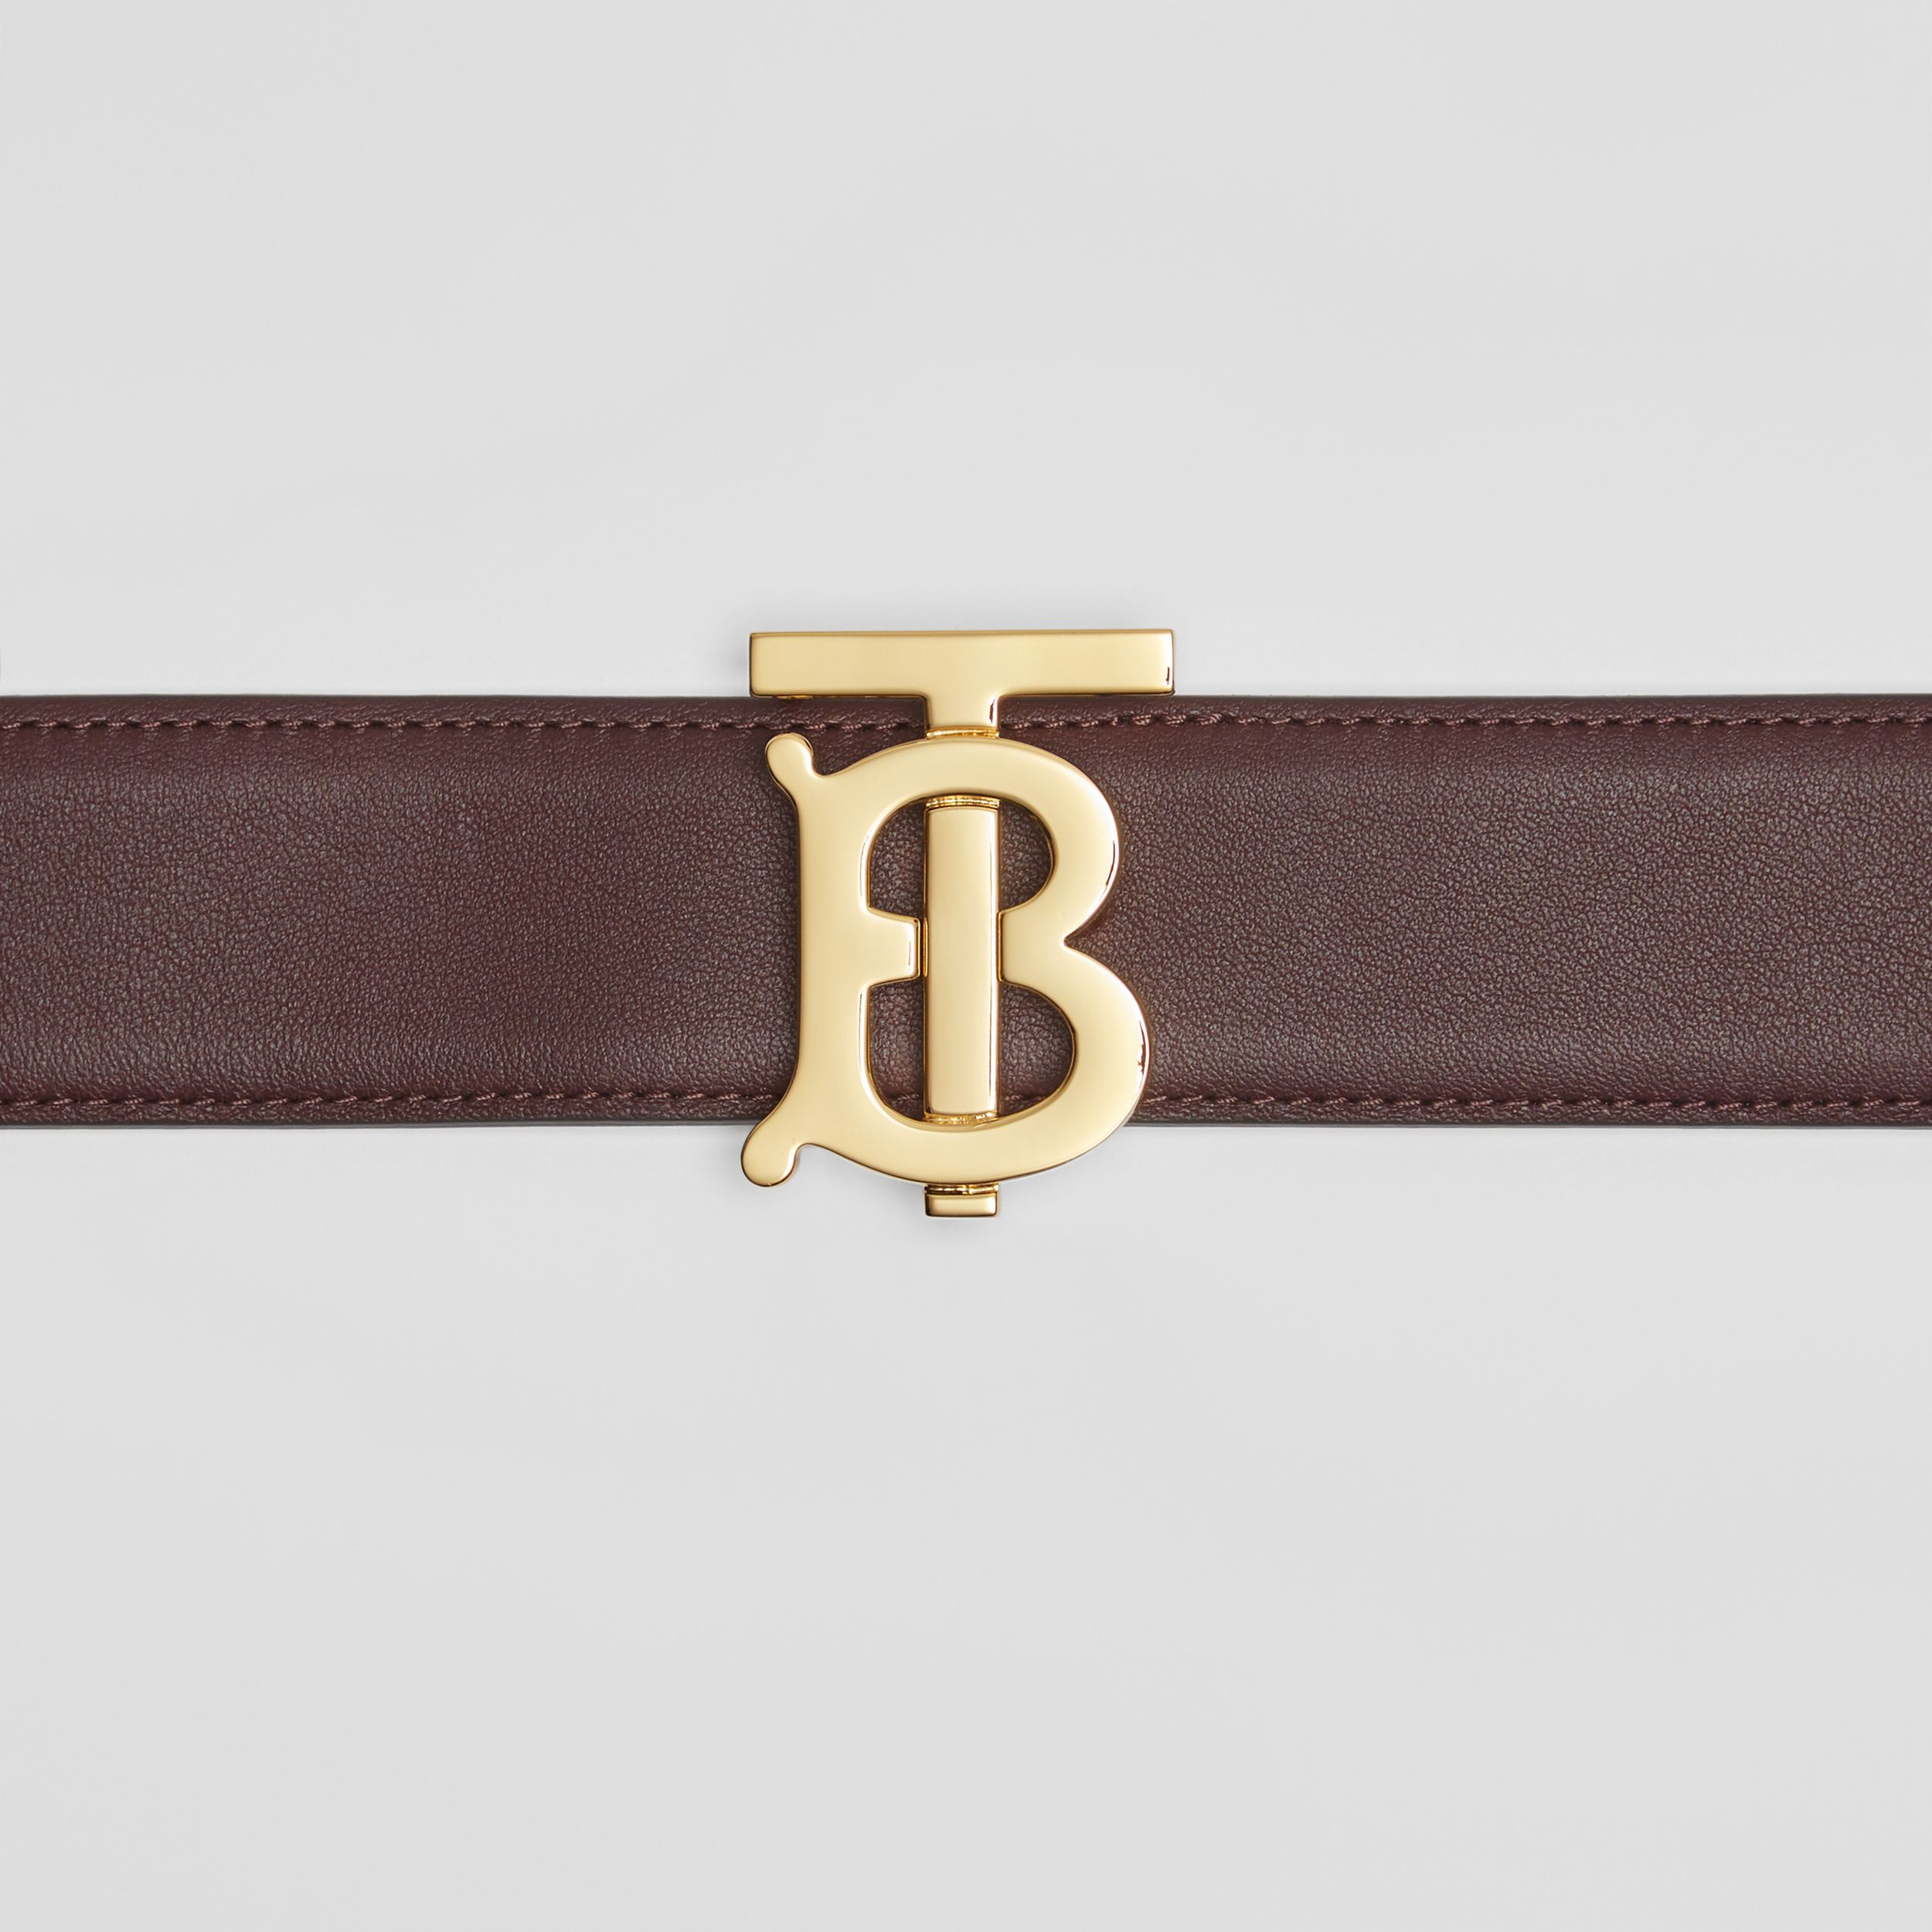 Reversible Monogram Motif Leather Belt in Oxblood/rose Beige - Women | Burberry - 2